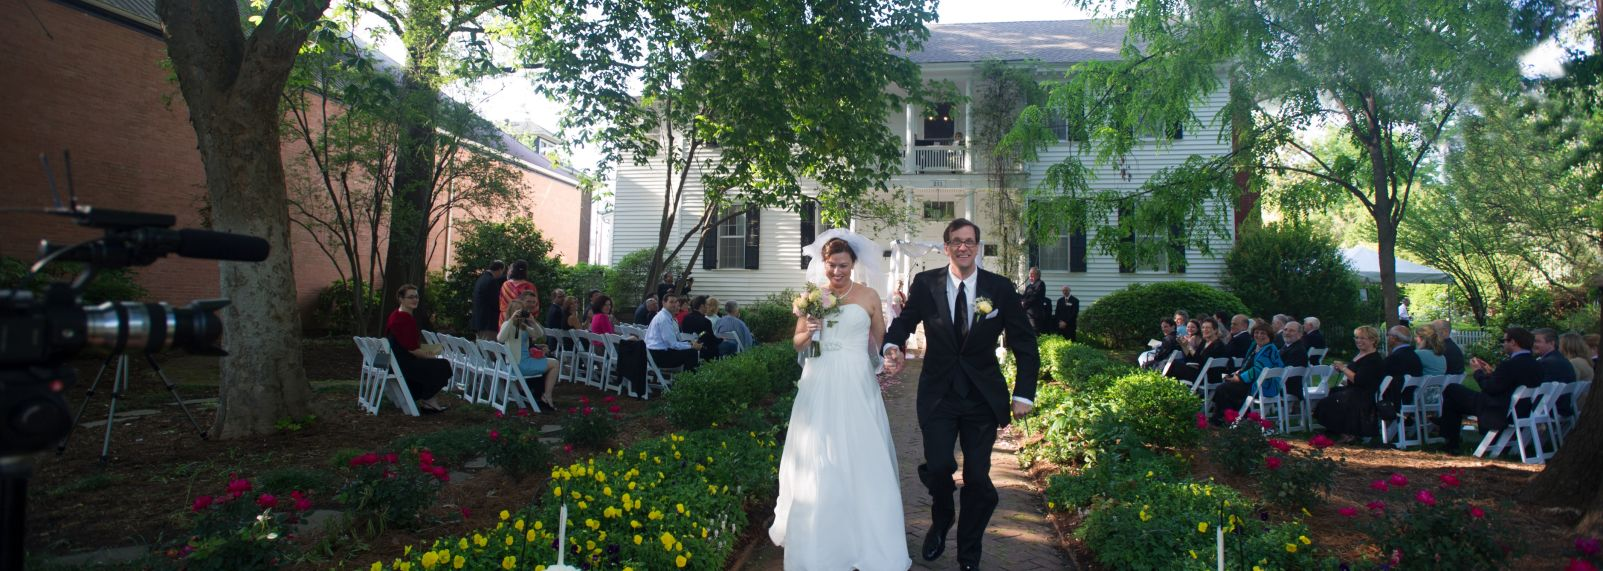 Wedding at Haywood Hall